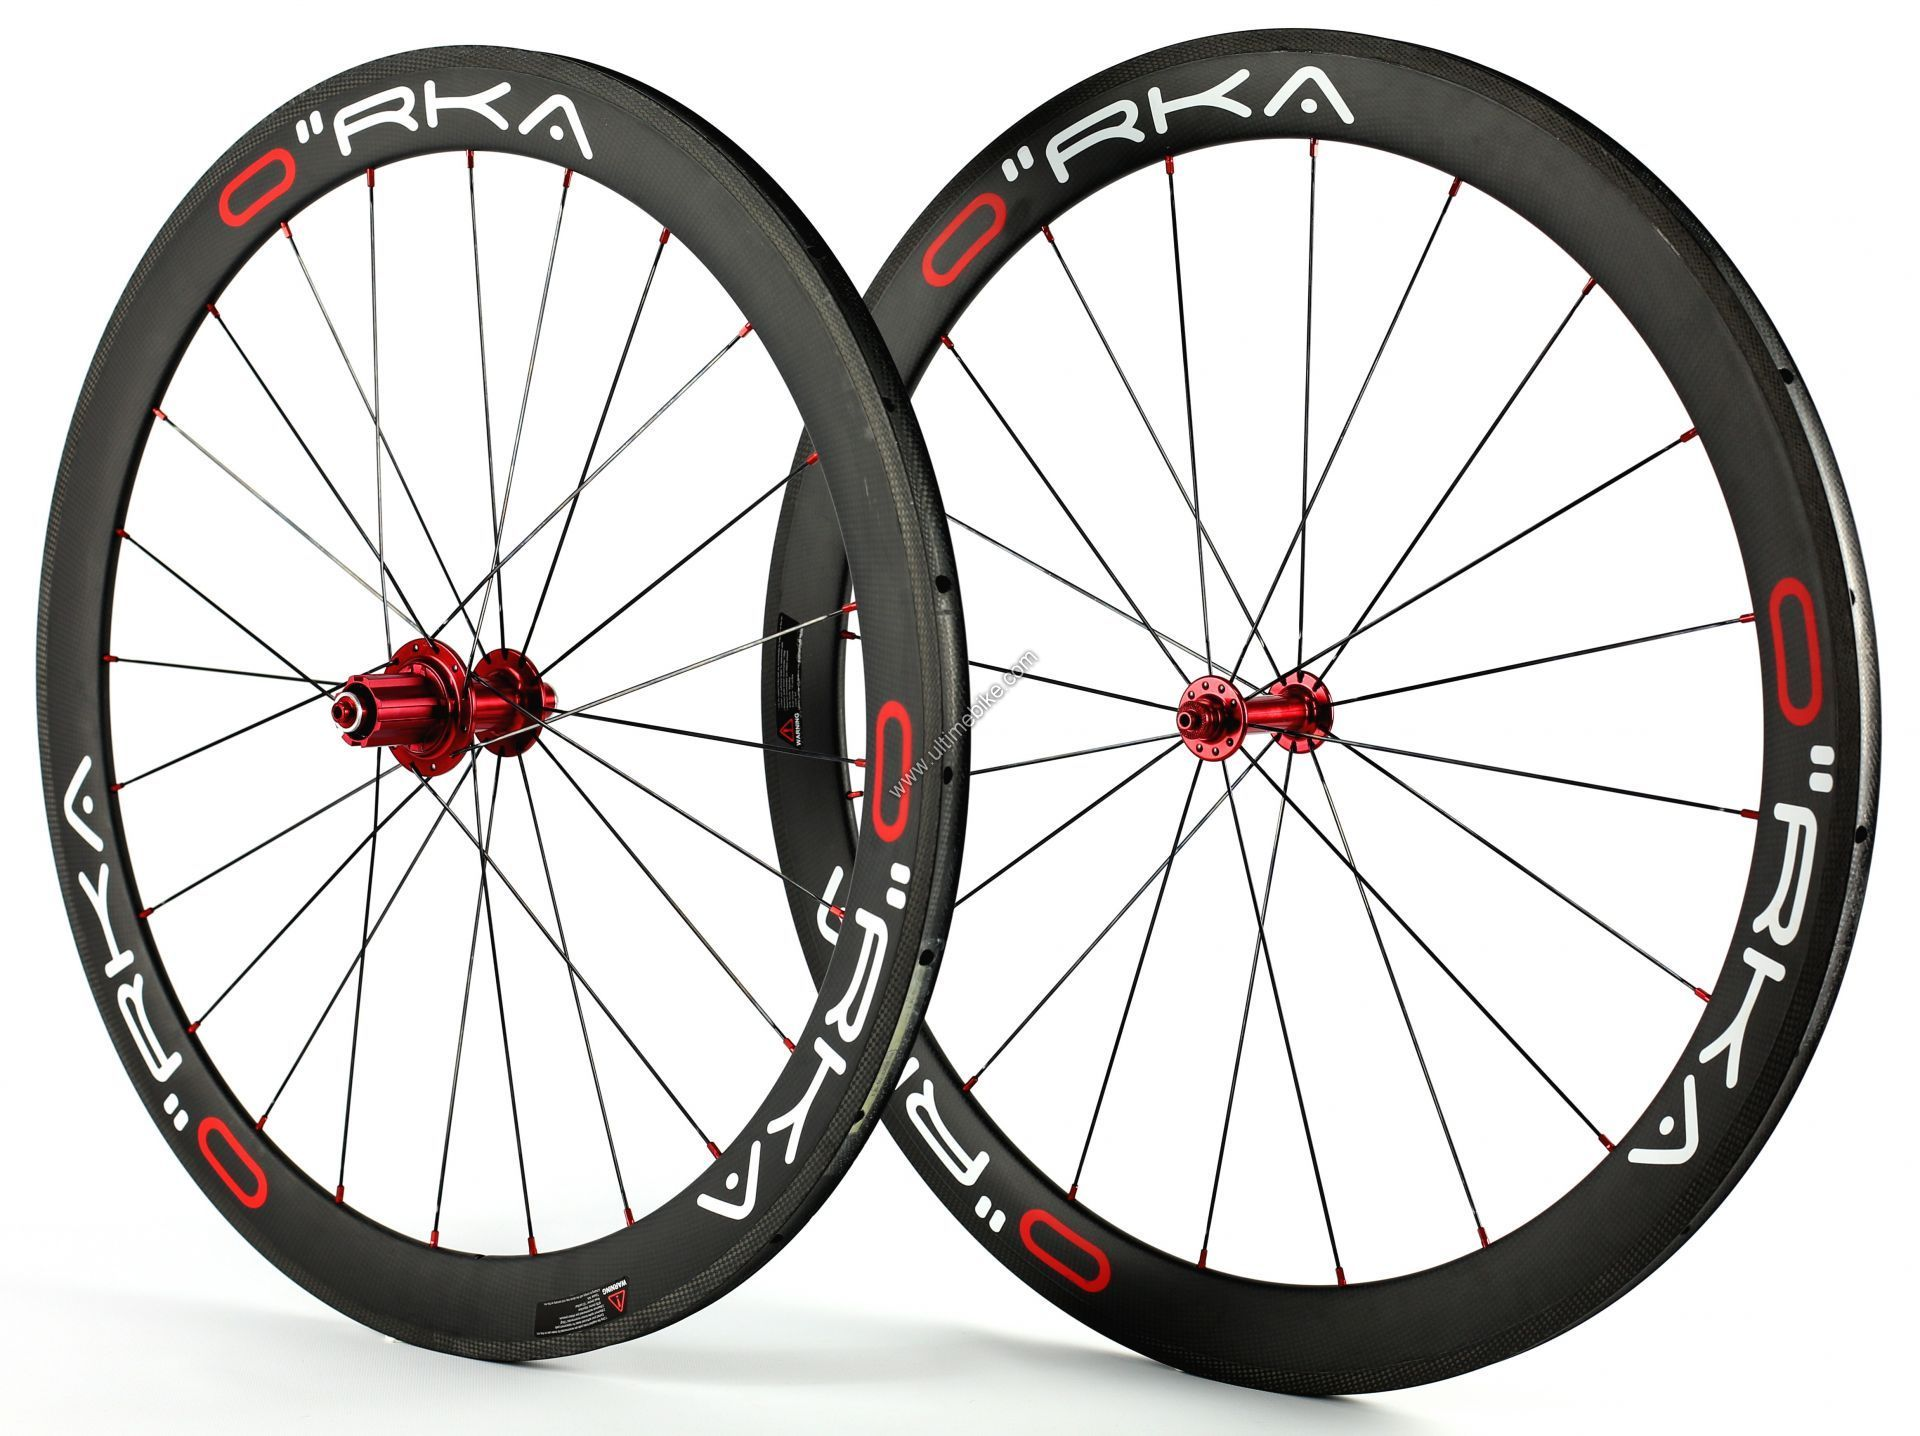 Roue Orka Carbone 50 mm Boyaux corps Campagnolo 10 / 11 v (paire)